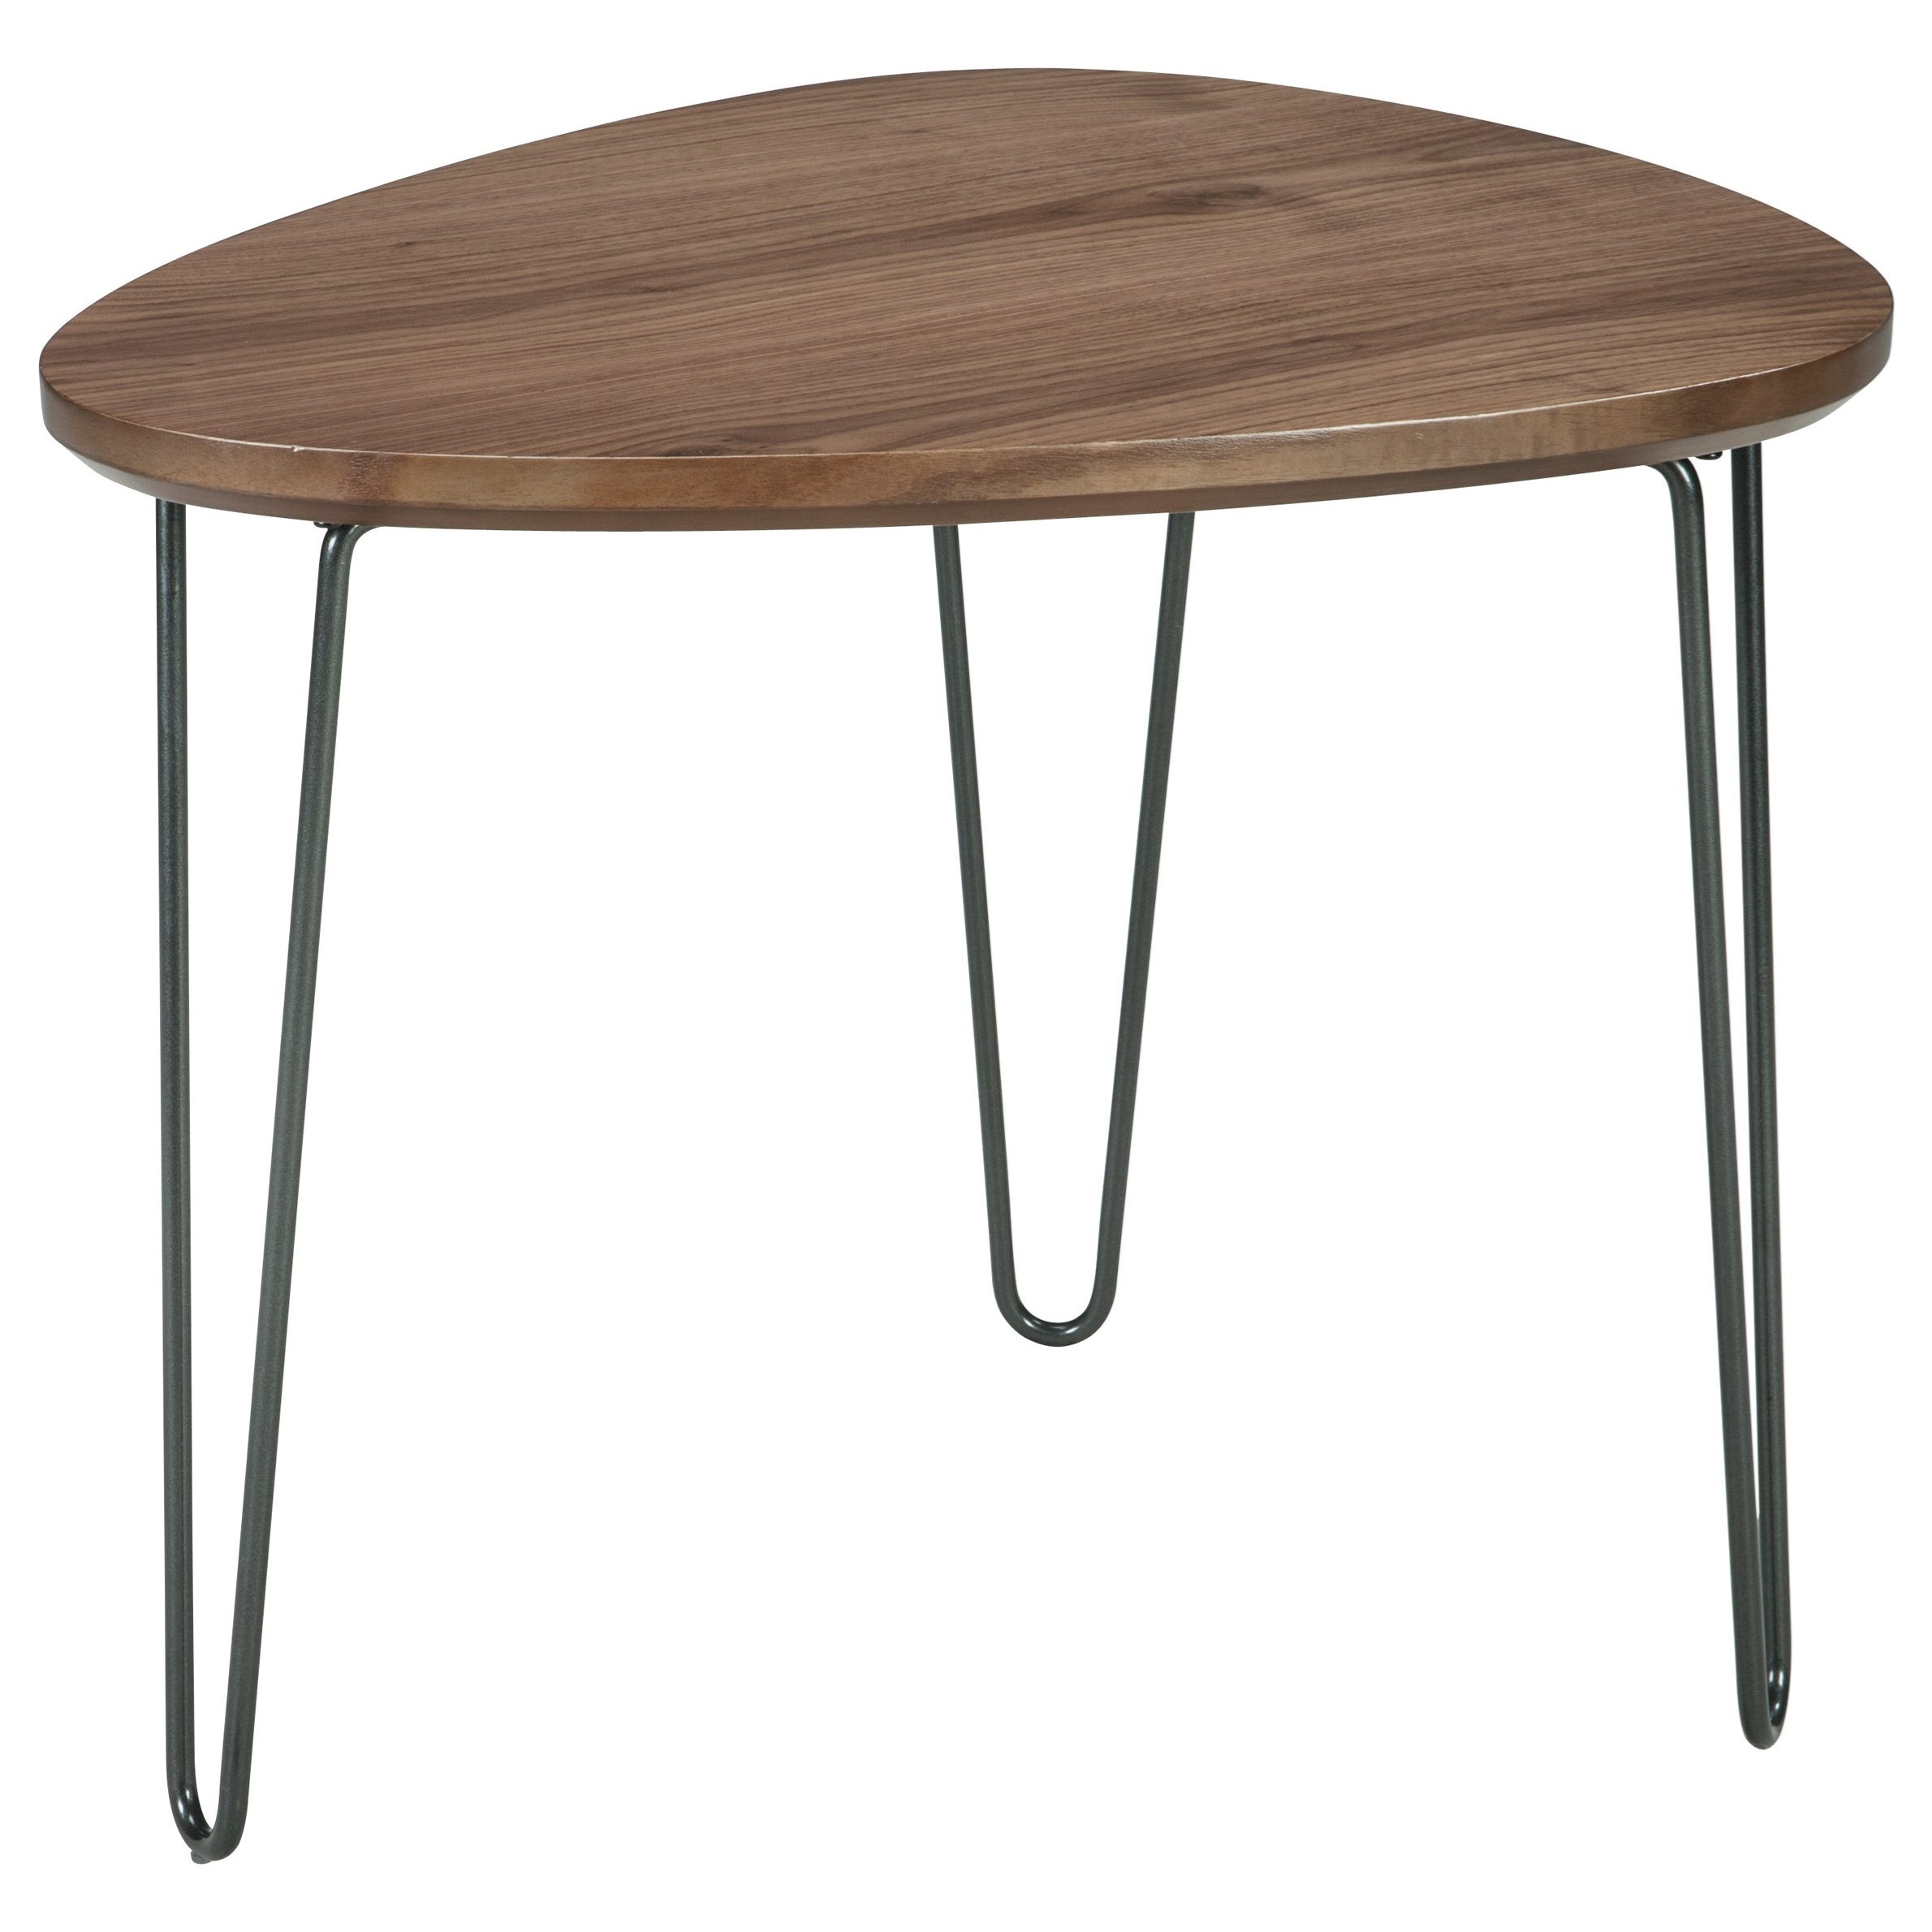 Signature Design by Ashley Courager Triangle End Table - Item Number: T242-6